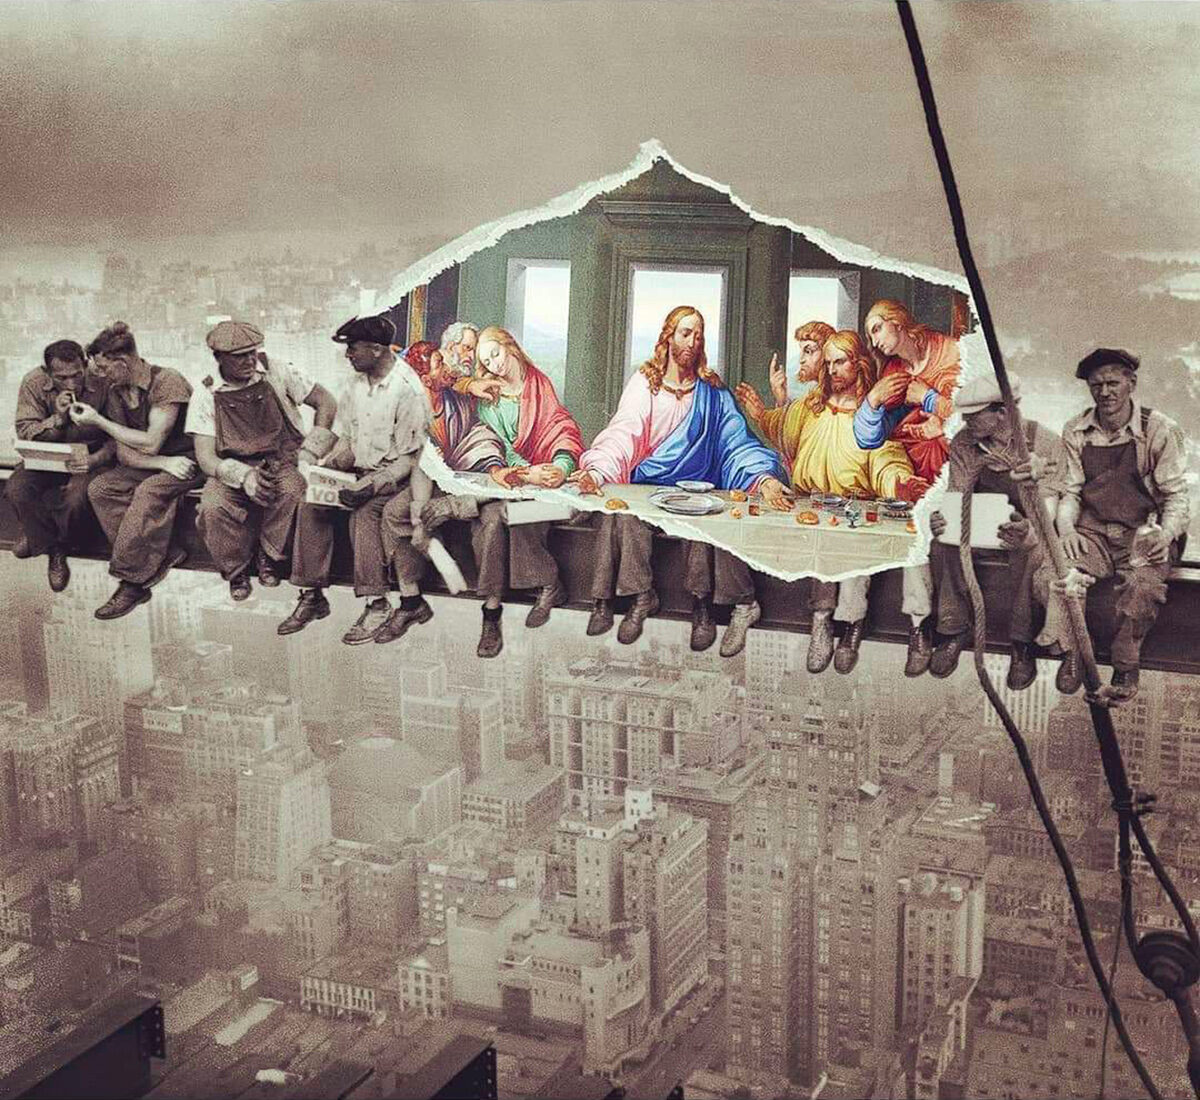 Breakfast in the Sky with the Last Supper